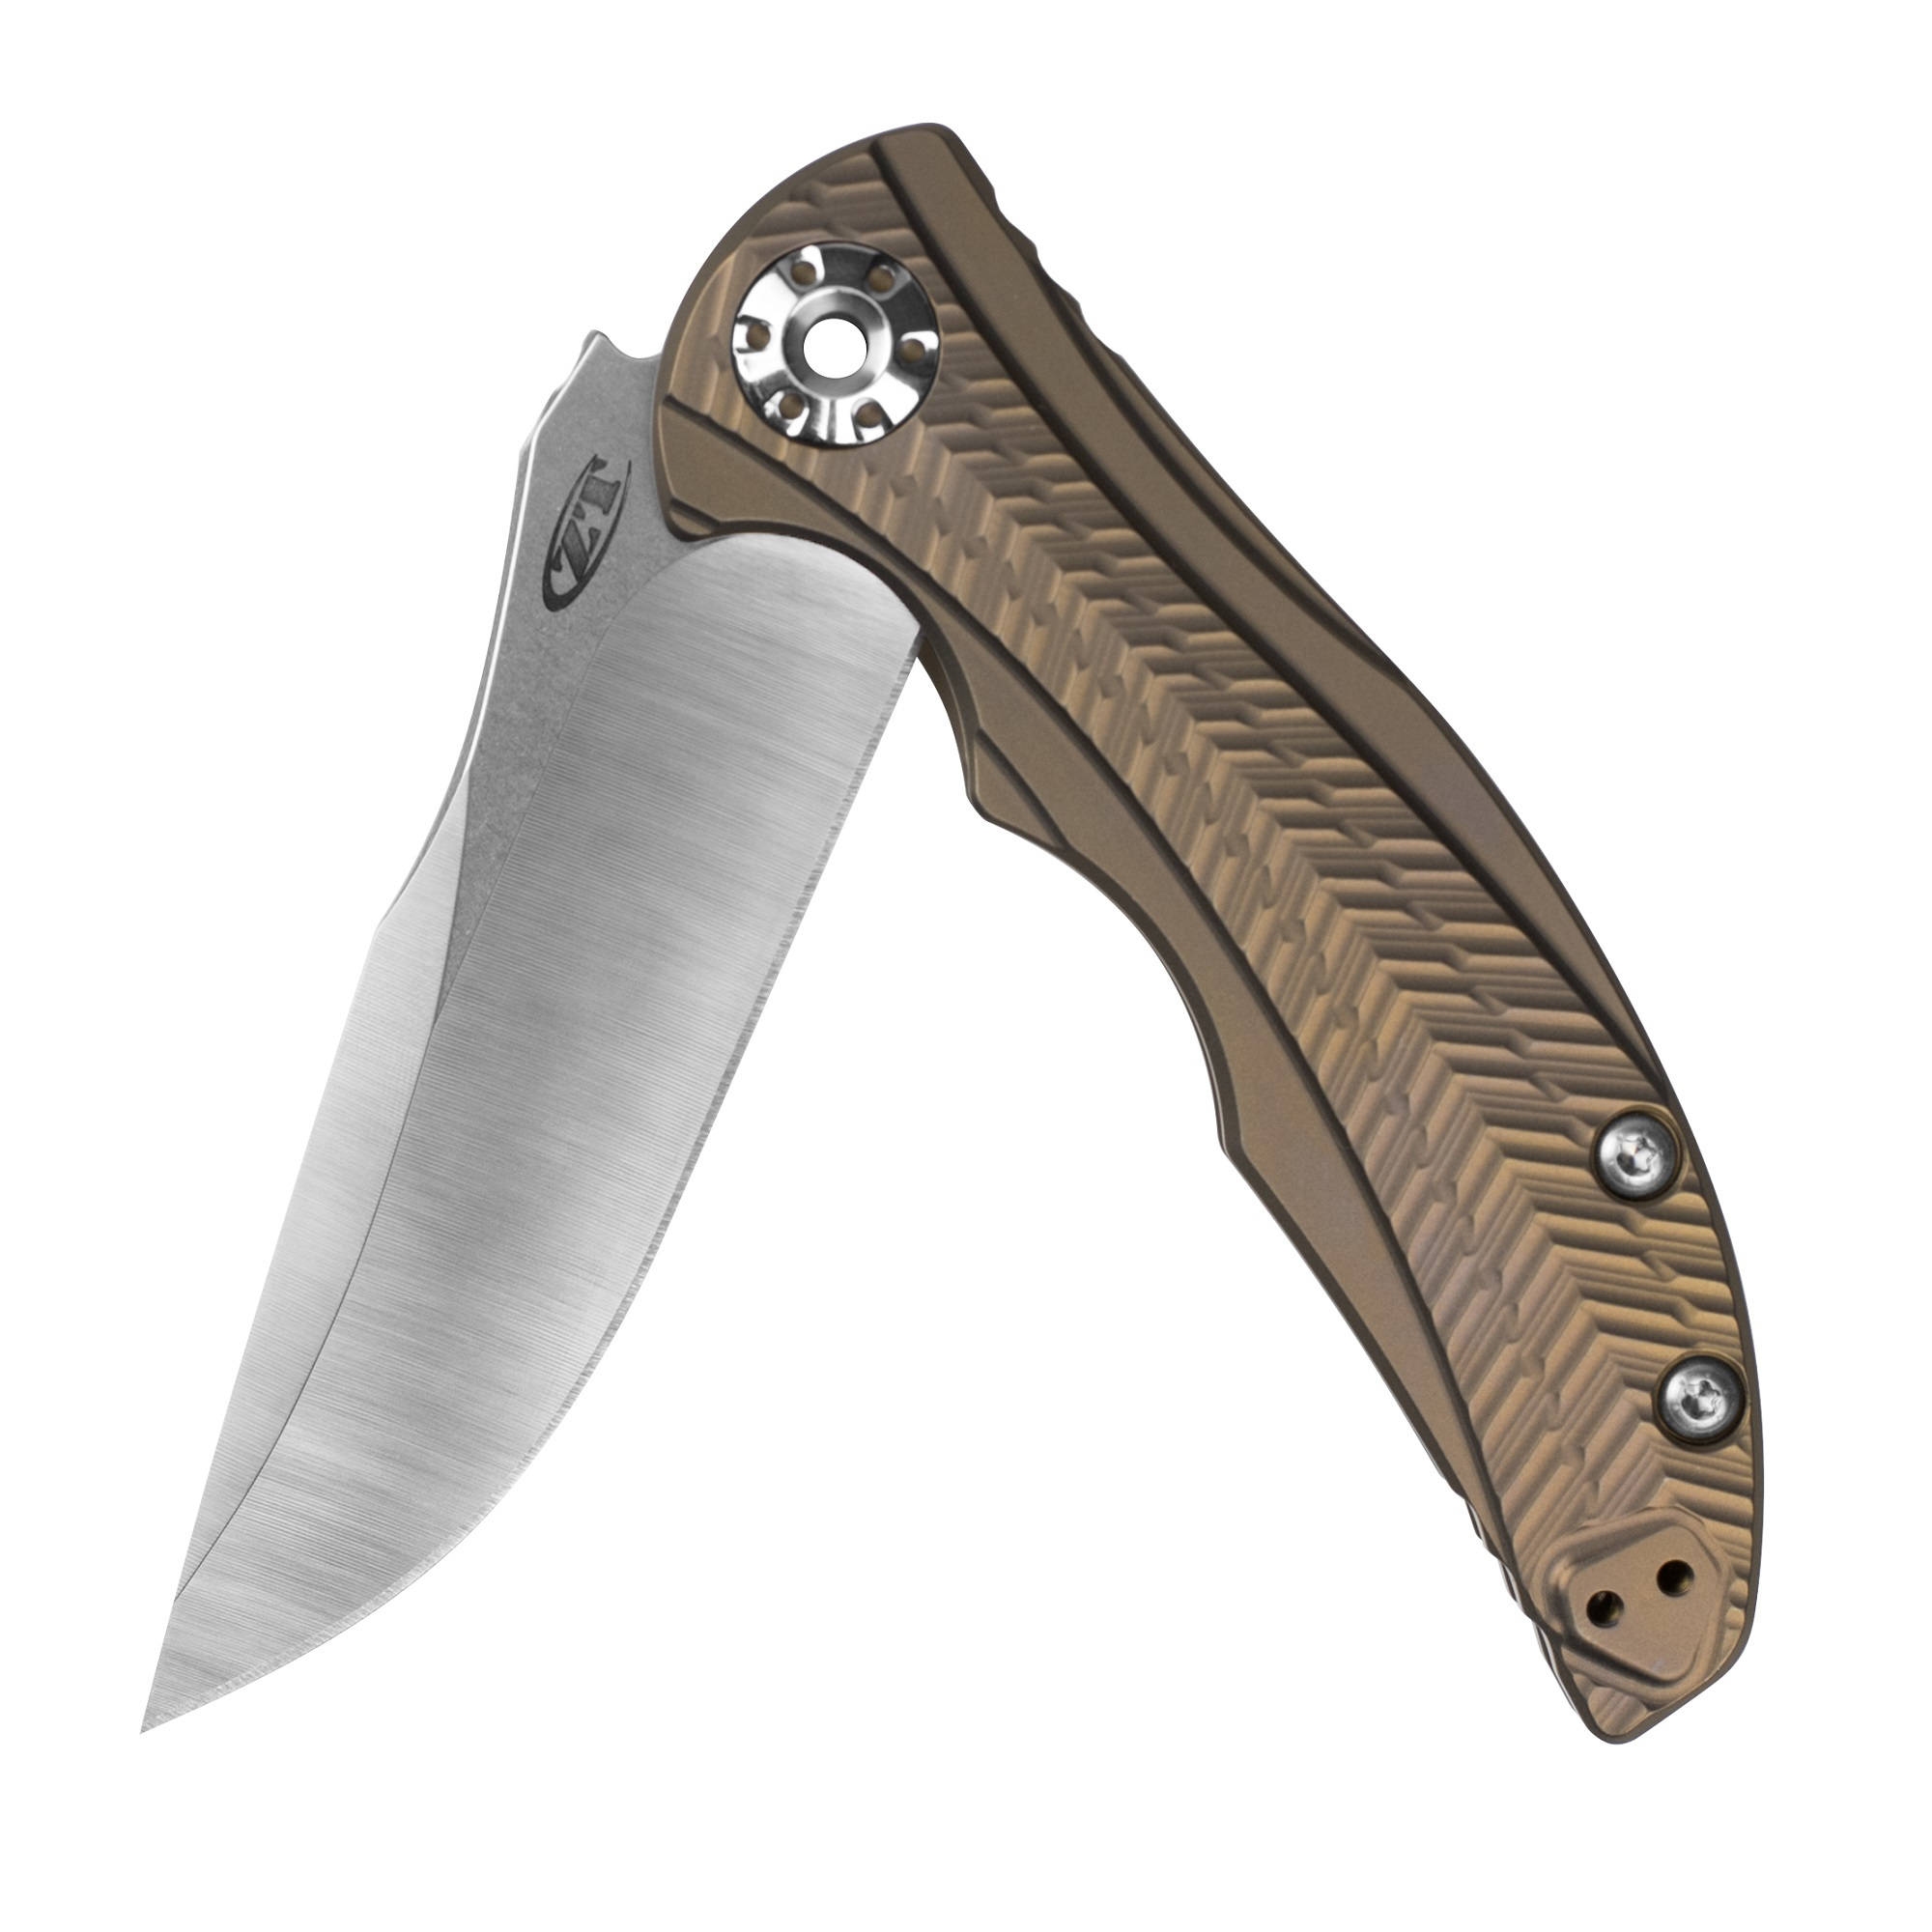 Zero Tolerance 0609 Pocketknife; 3.4-inch CPM 20CV Drop Point Blade with Two-Toned Finish; 3D Textured Titanium Handle, Anodized Bronze; KVT Ball Bearing Manual Open; Reversible Pocketclip; 3.3 oz